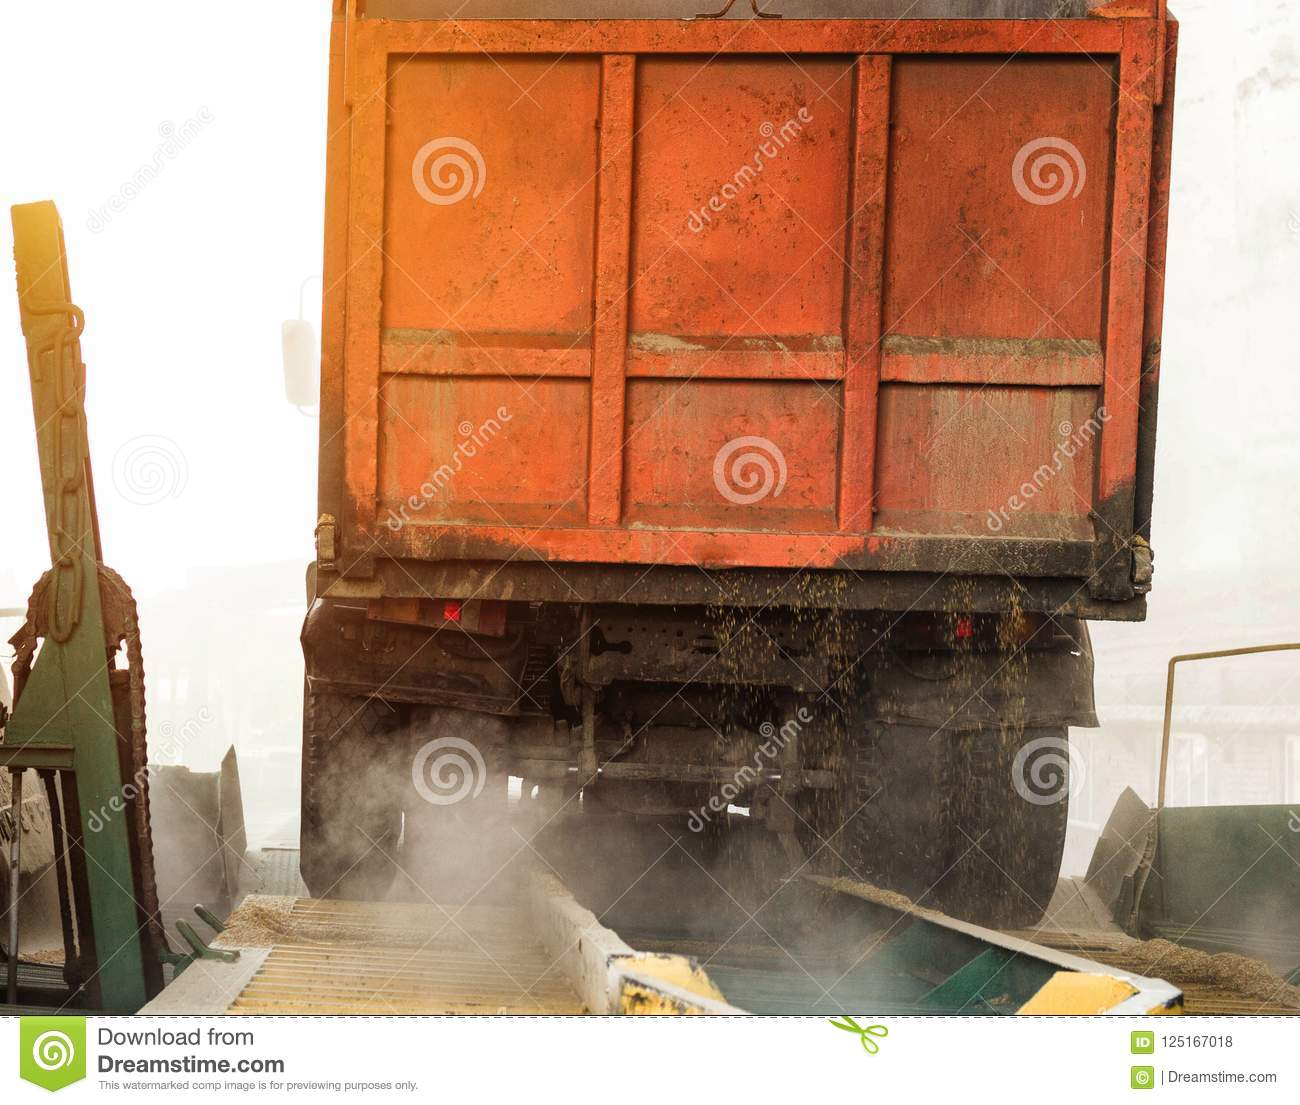 The Truck Unloads Grain At The Grain Storage And Processing Plant Corn Trailer Unload Seed Stock Photo Image Of Mill Breadstuff 125167018